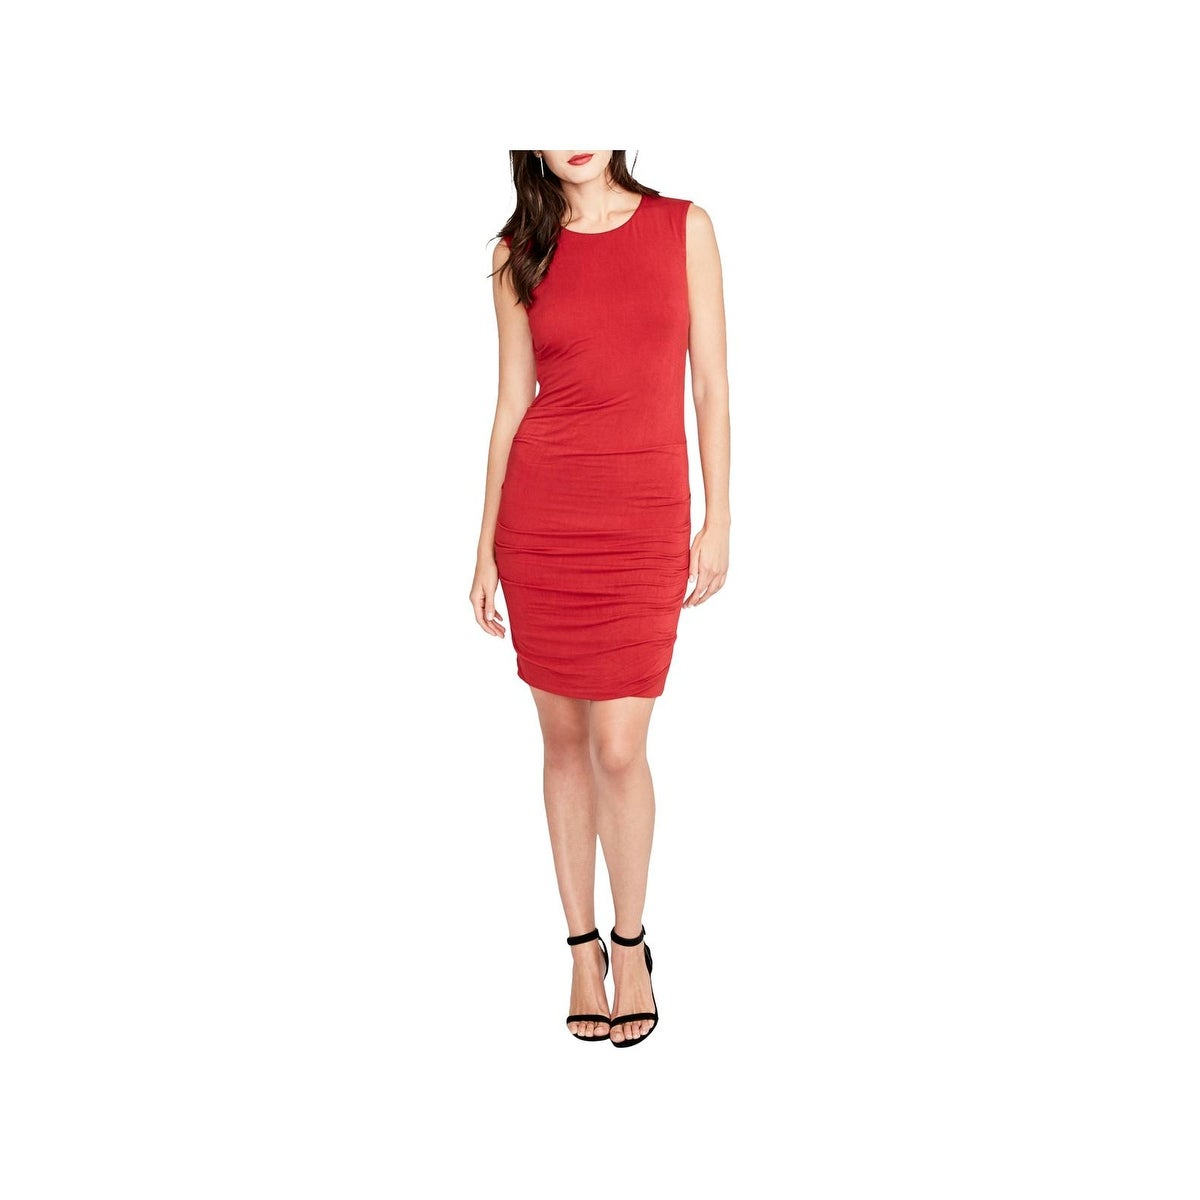 9d40de5c00b2 Size XXL Dresses | Find Great Women's Clothing Deals Shopping at Overstock